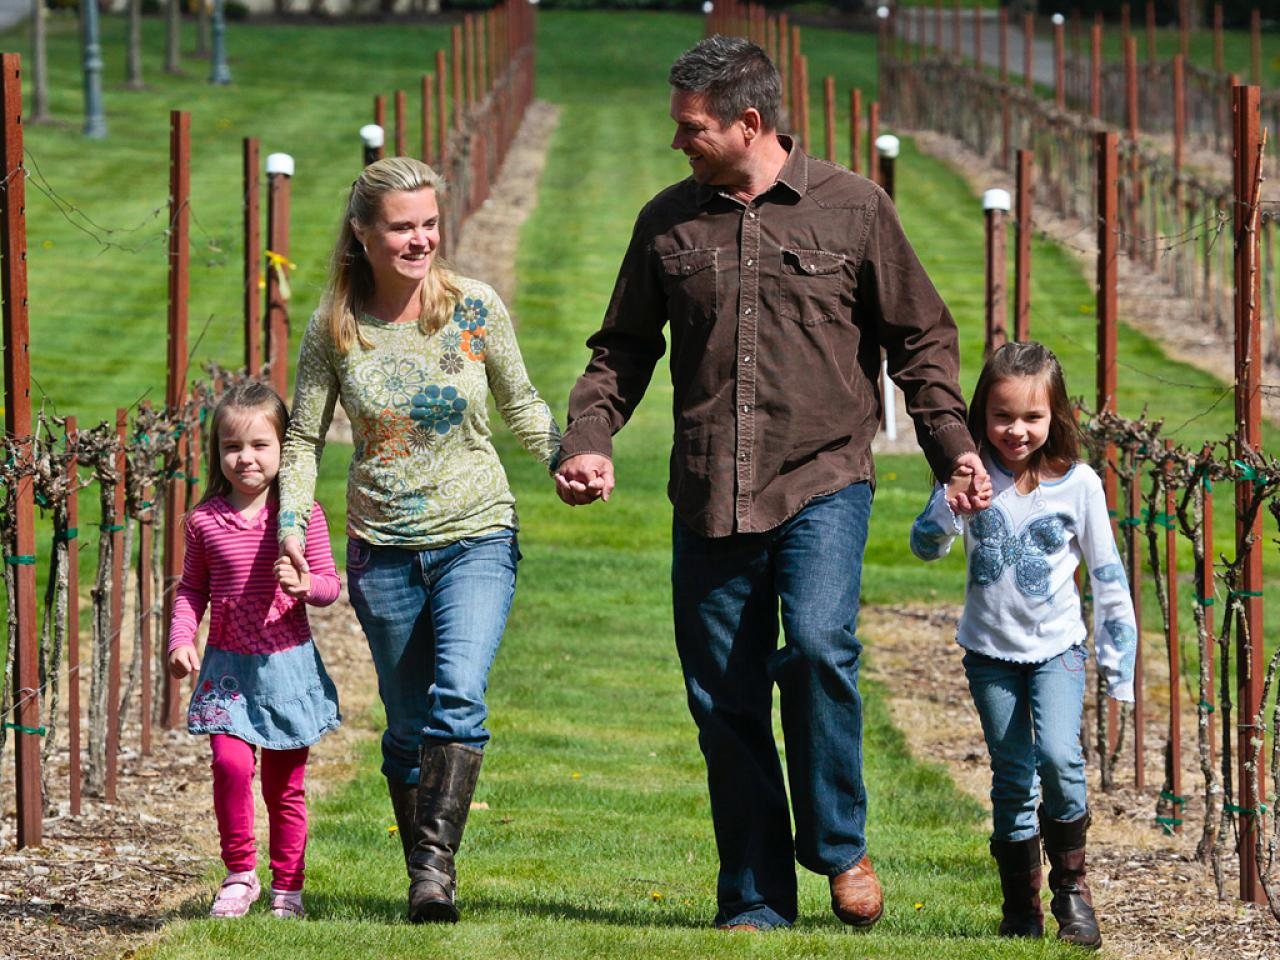 Christian Sparkman and his family in the vineyard